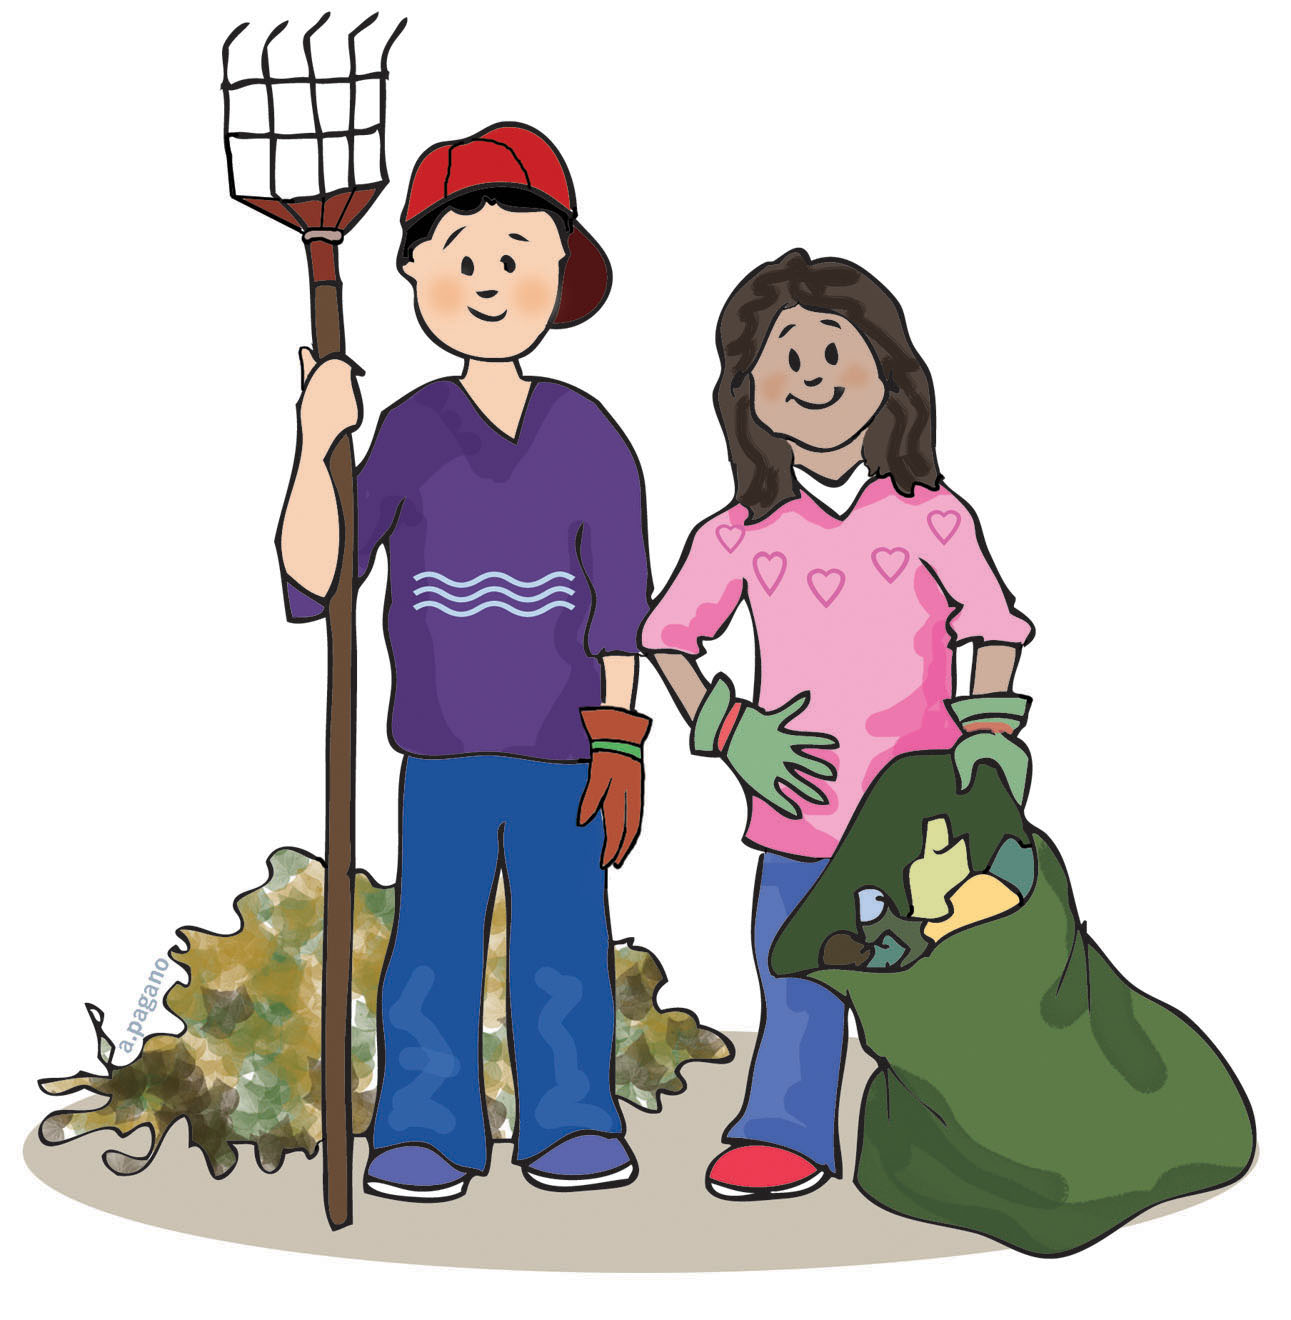 Clip Art Community Service Clip Art community service clipart kid clean up